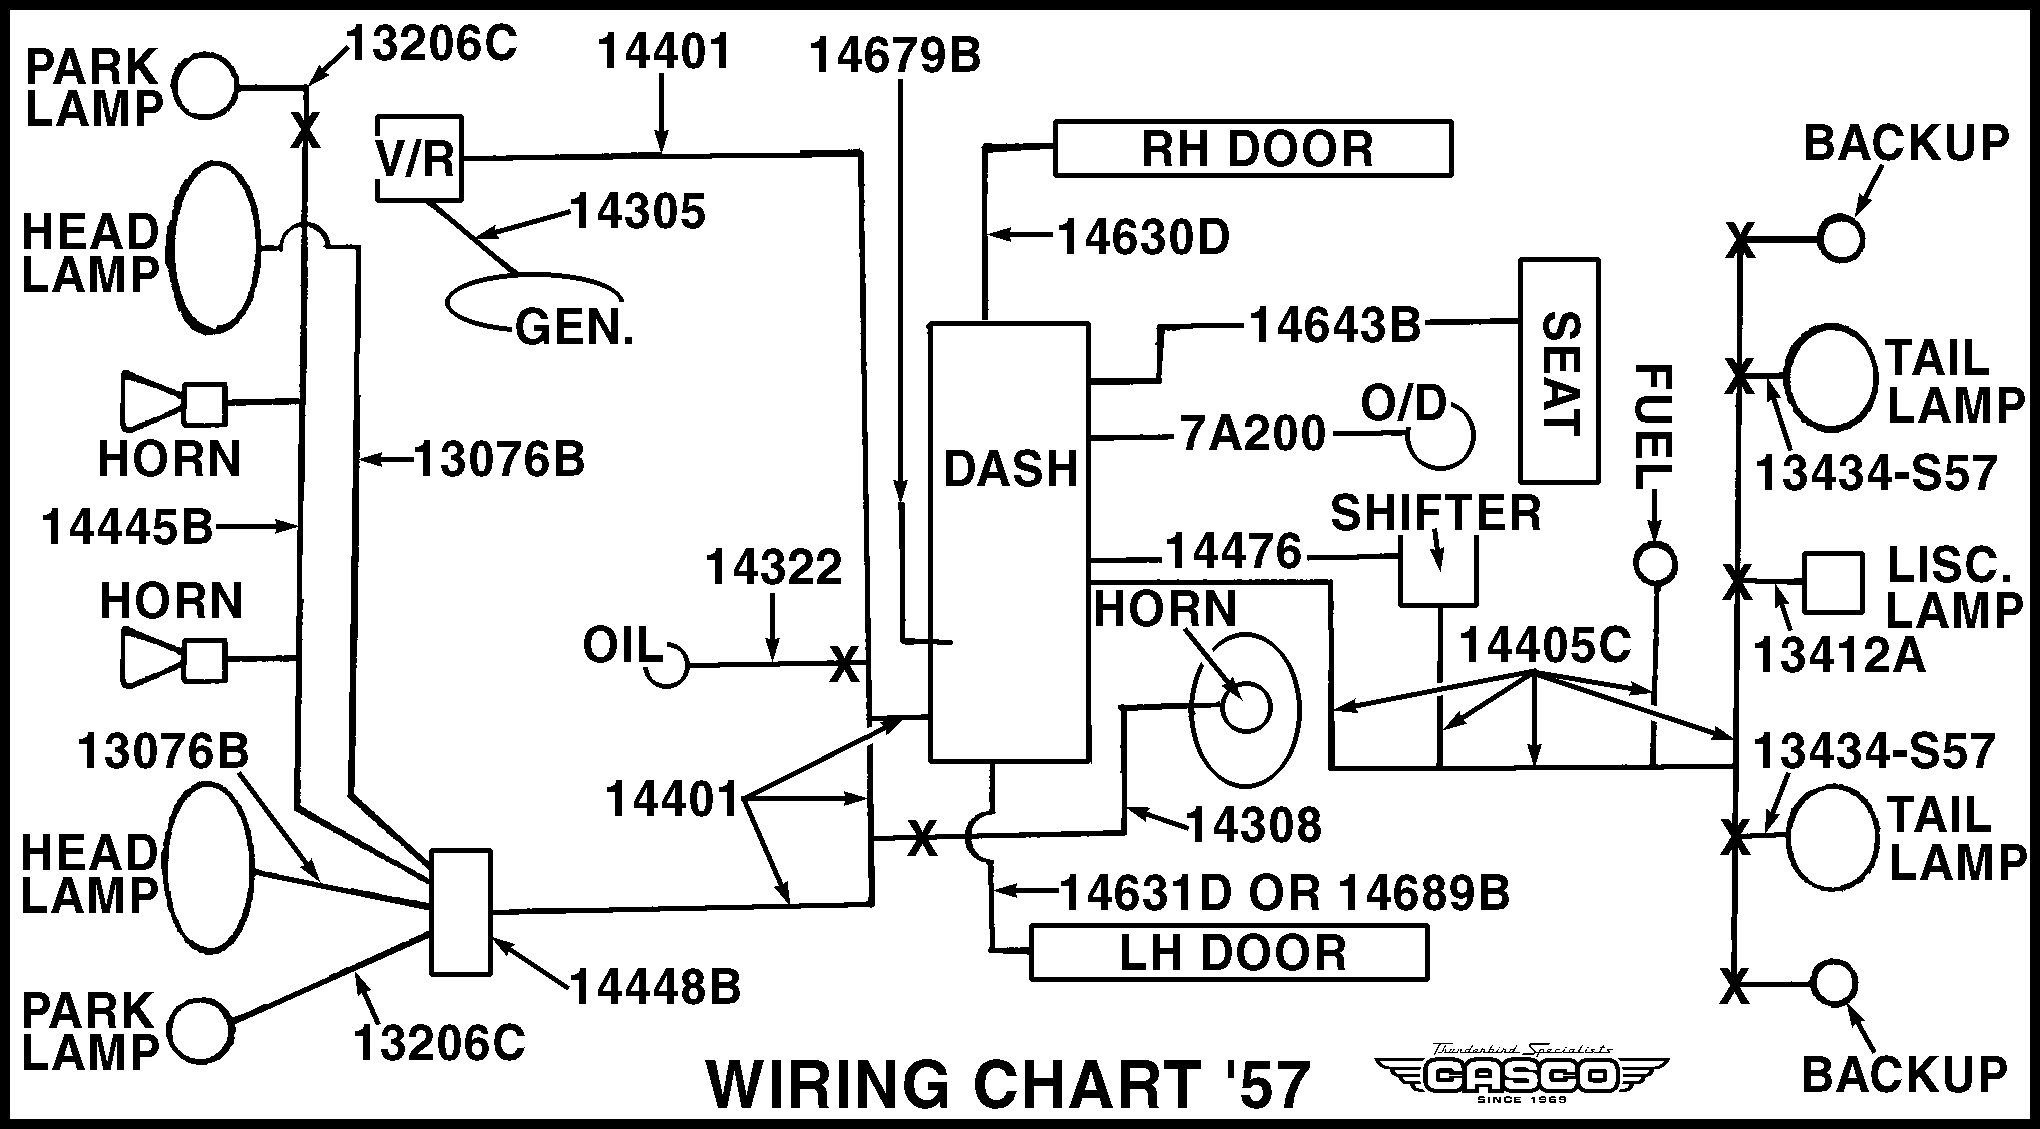 Junction Block Double Stack 55 57 1 Per Car Wiring Images Wiringchart